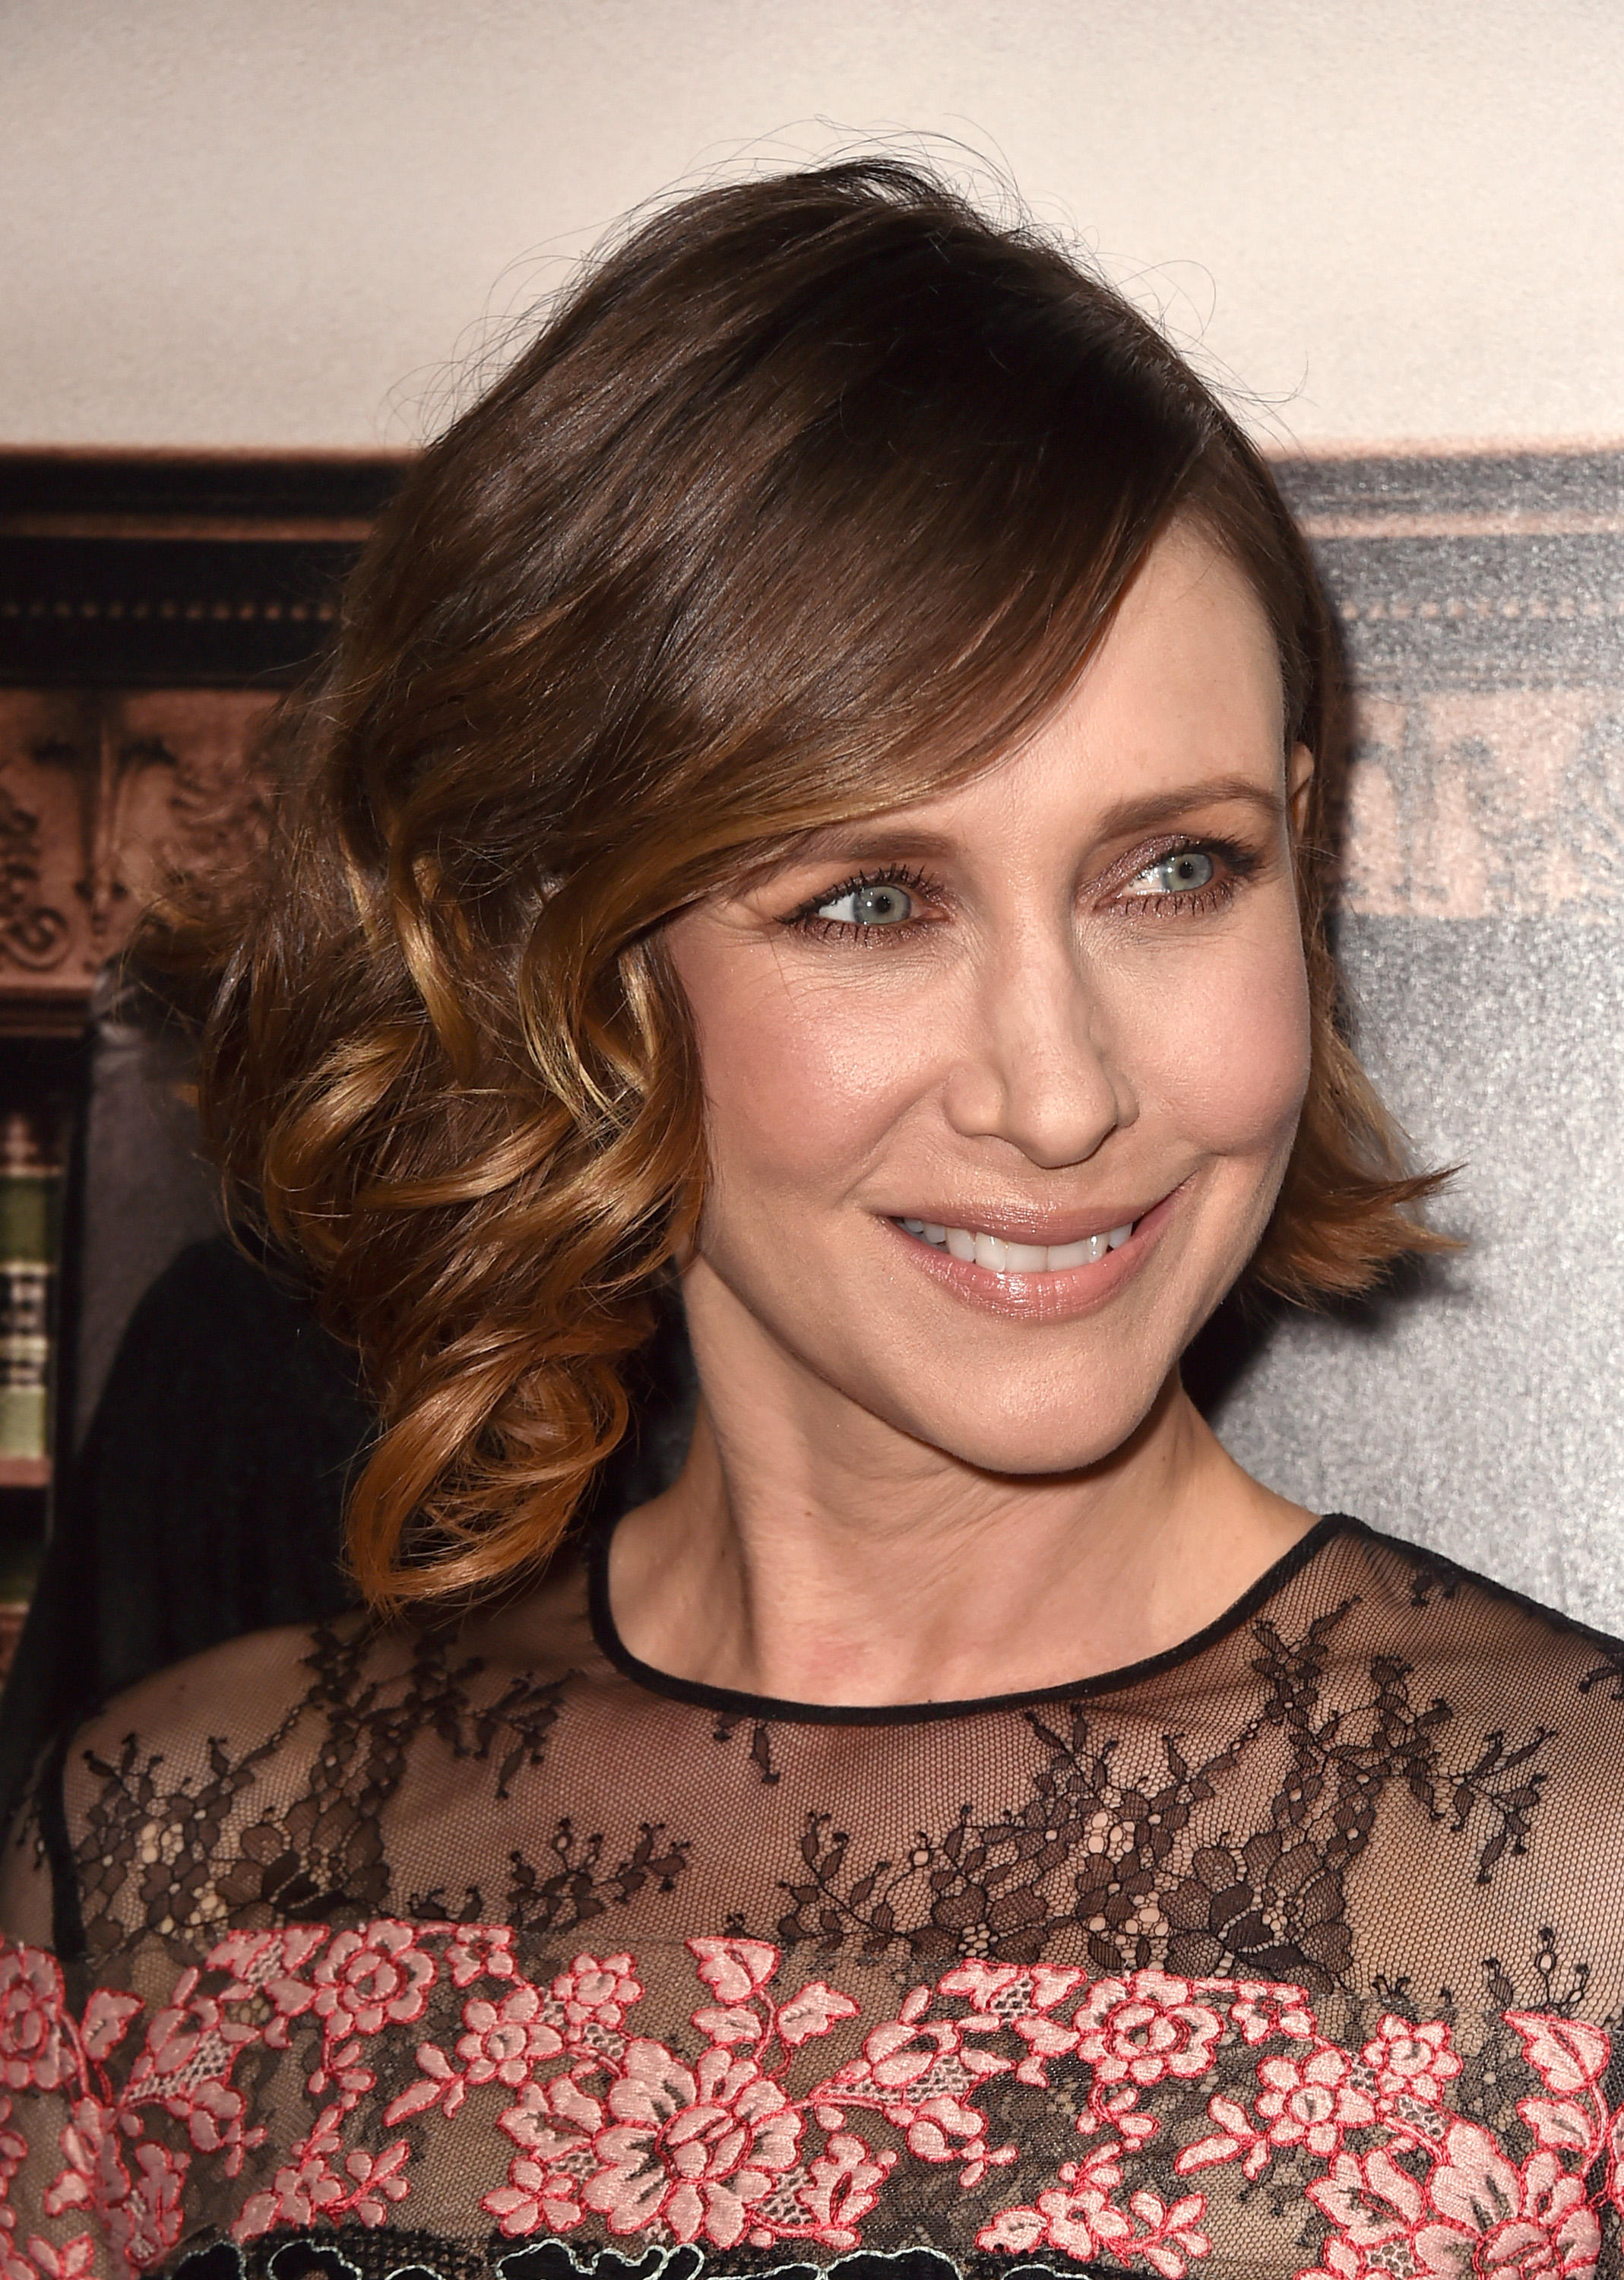 The Many Looks Of Vera Farmiga Fandango